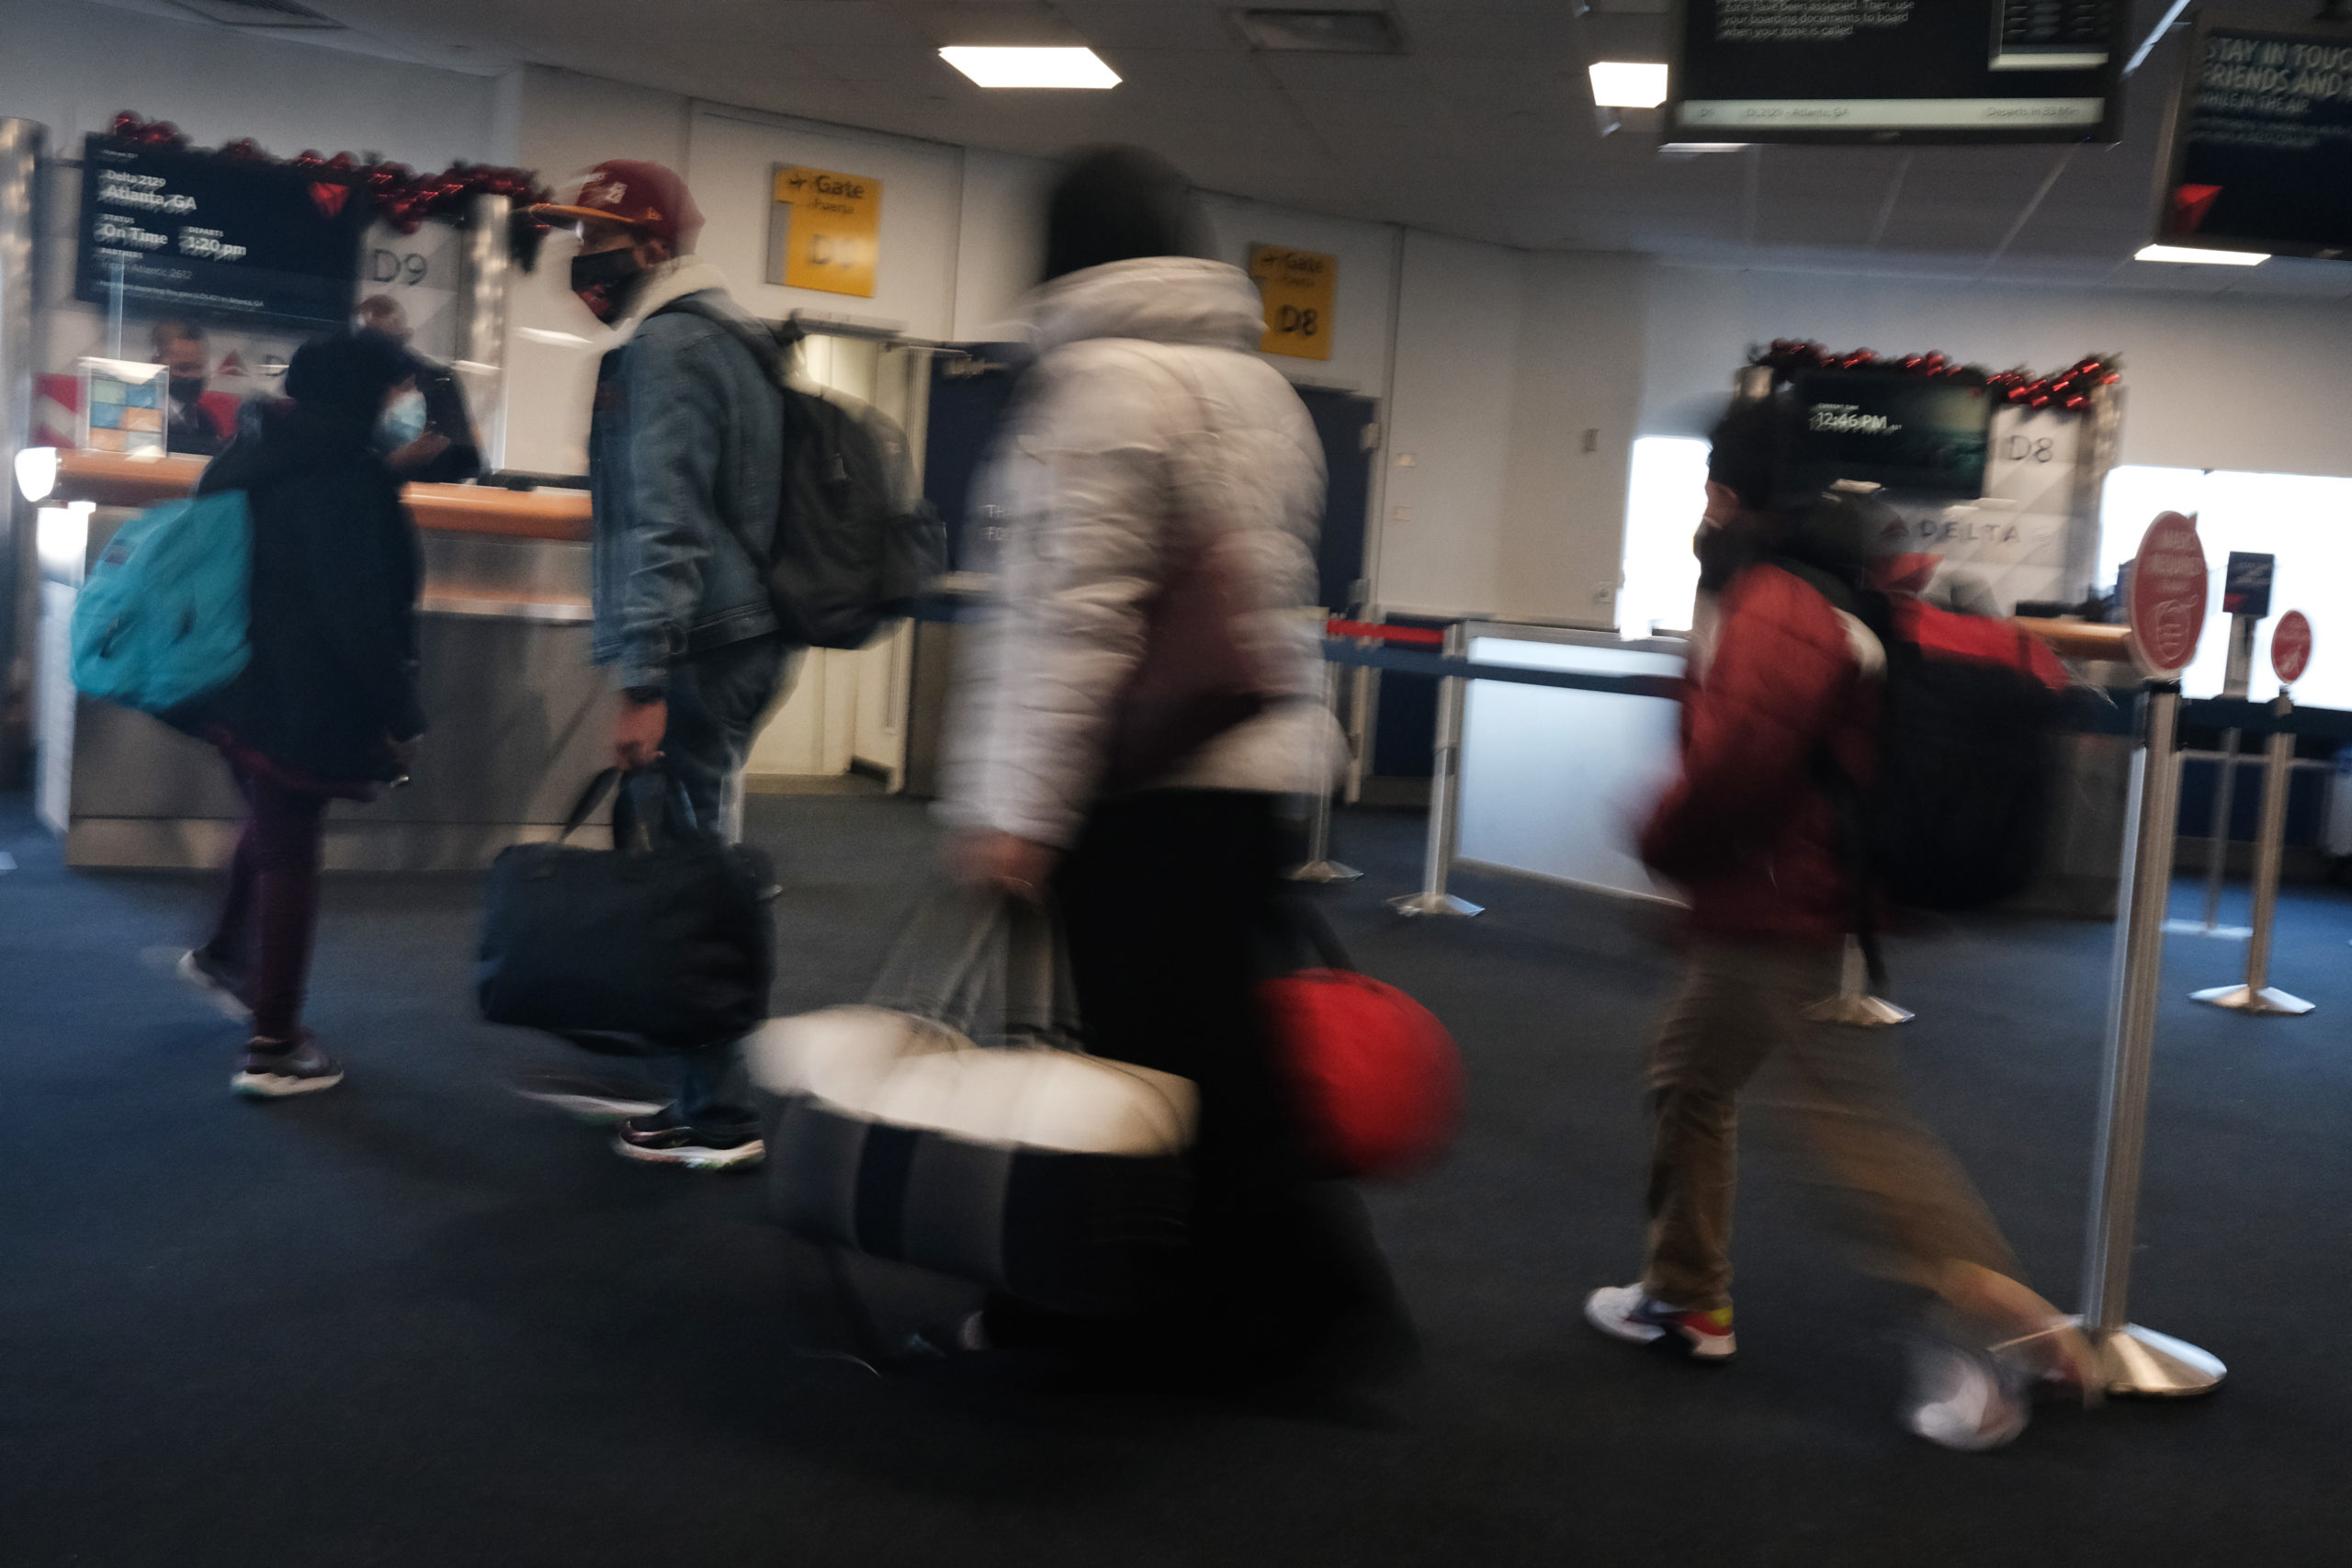 NEW YORK, NY- DECEMBER 03: People travel through New York's LaGuardia Airport on December 03, 2020 in New York City. Despite a recent rise in airline travel over the Thanksgiving holiday, the airline industry is still experiencing a historic drop in traffic and profits due to the Covid-19 pandemic. (Photo by Spencer Platt/Getty Images)